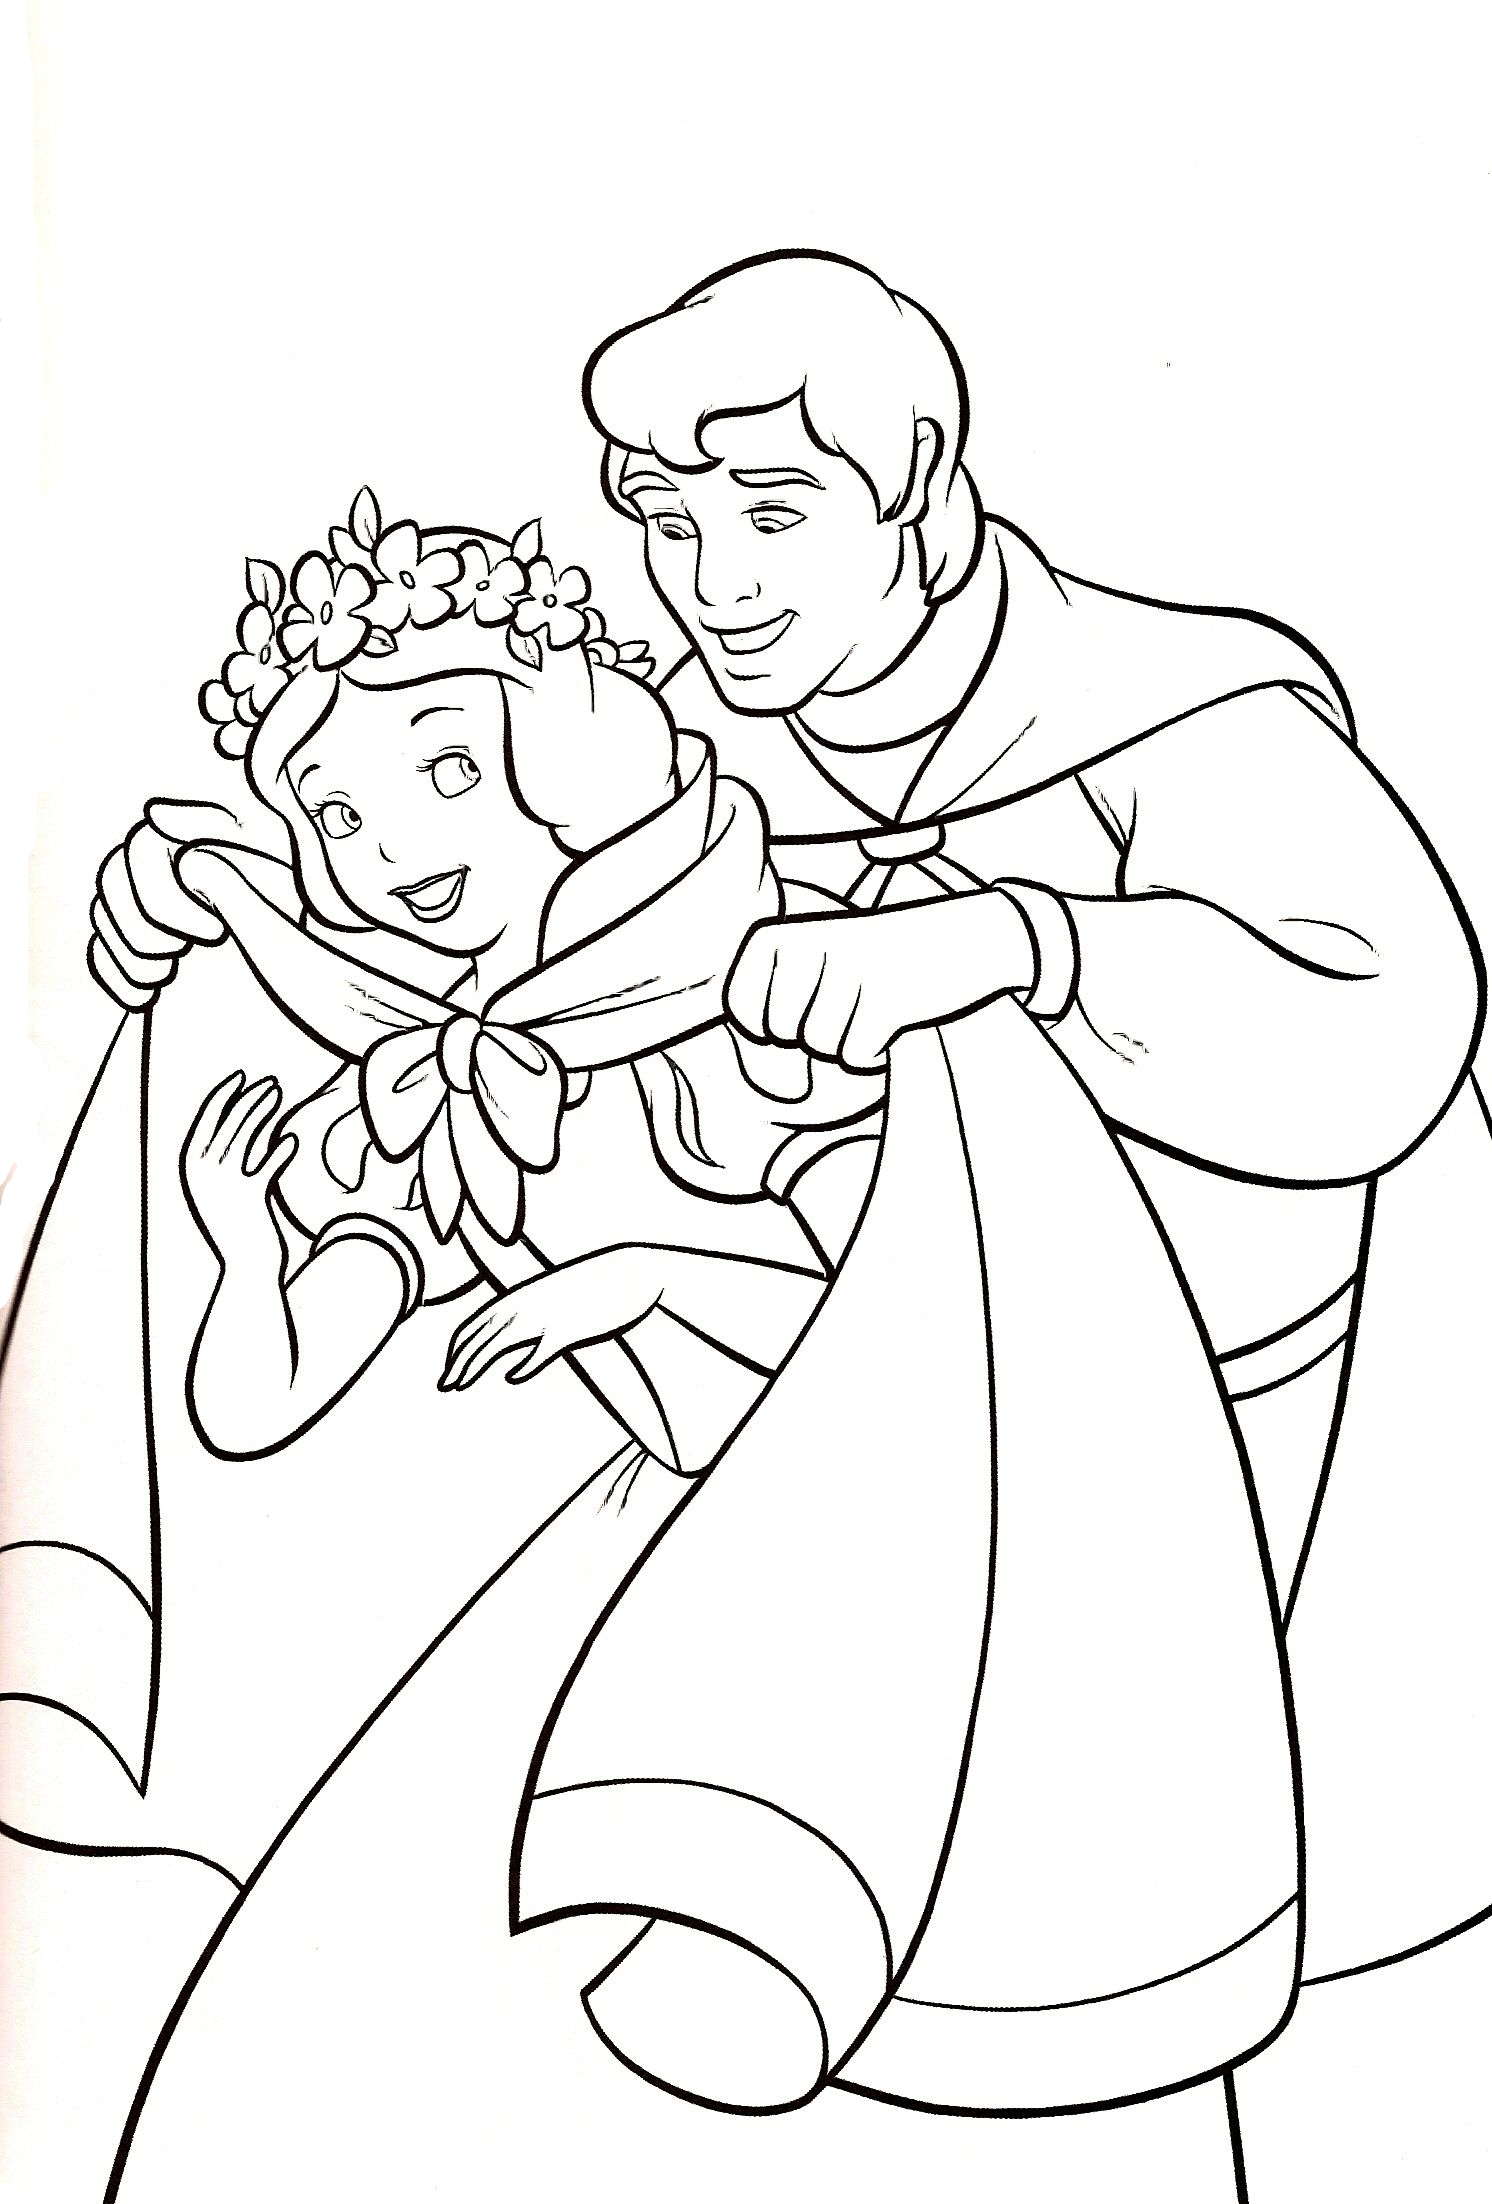 template coloring pages - photo#38